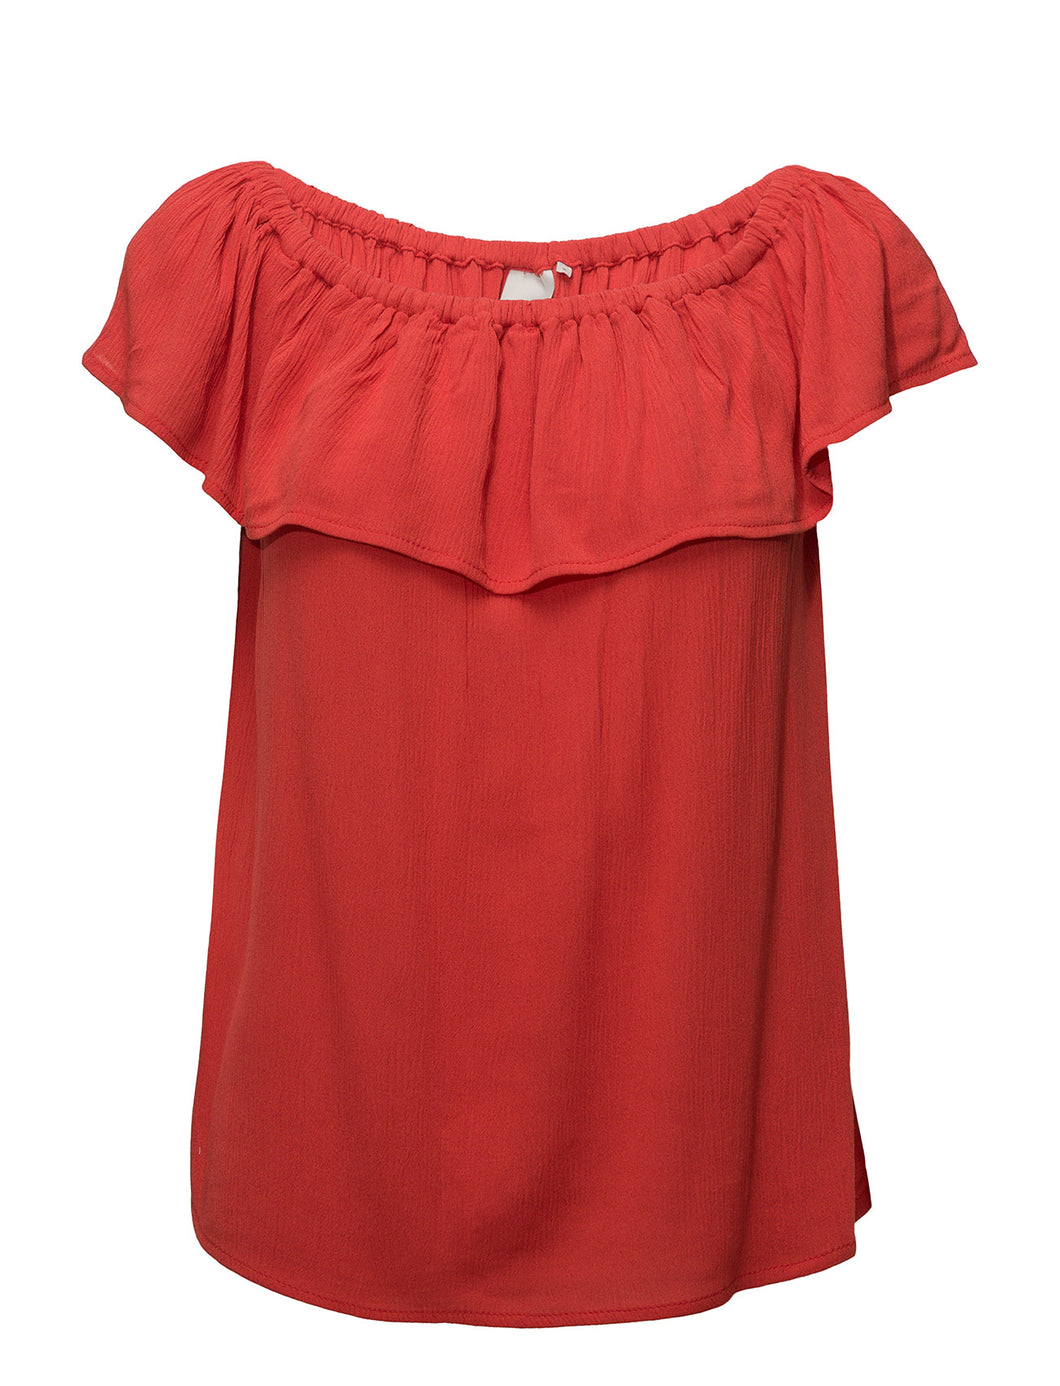 Ichi Marrakech Red Bardot Top